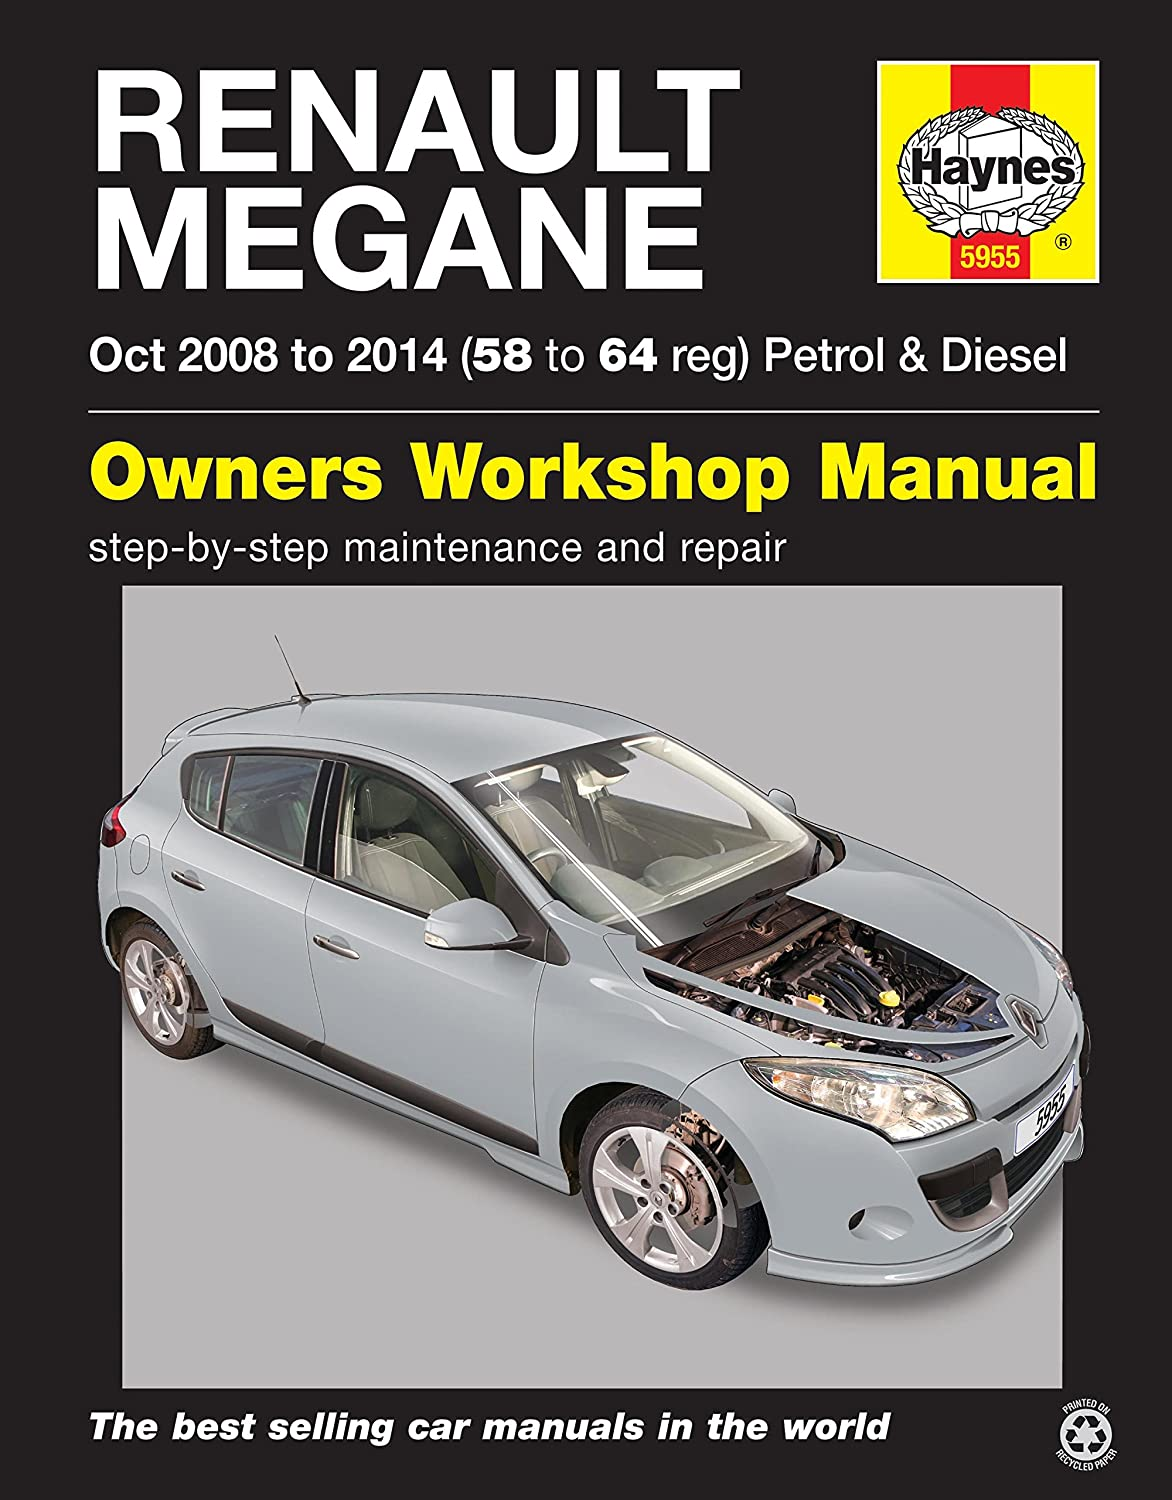 Renault Megane Repair Manual Haynes Manual Service Manual Workshop Manual  2008-2014: Amazon.co.uk: Car & Motorbike